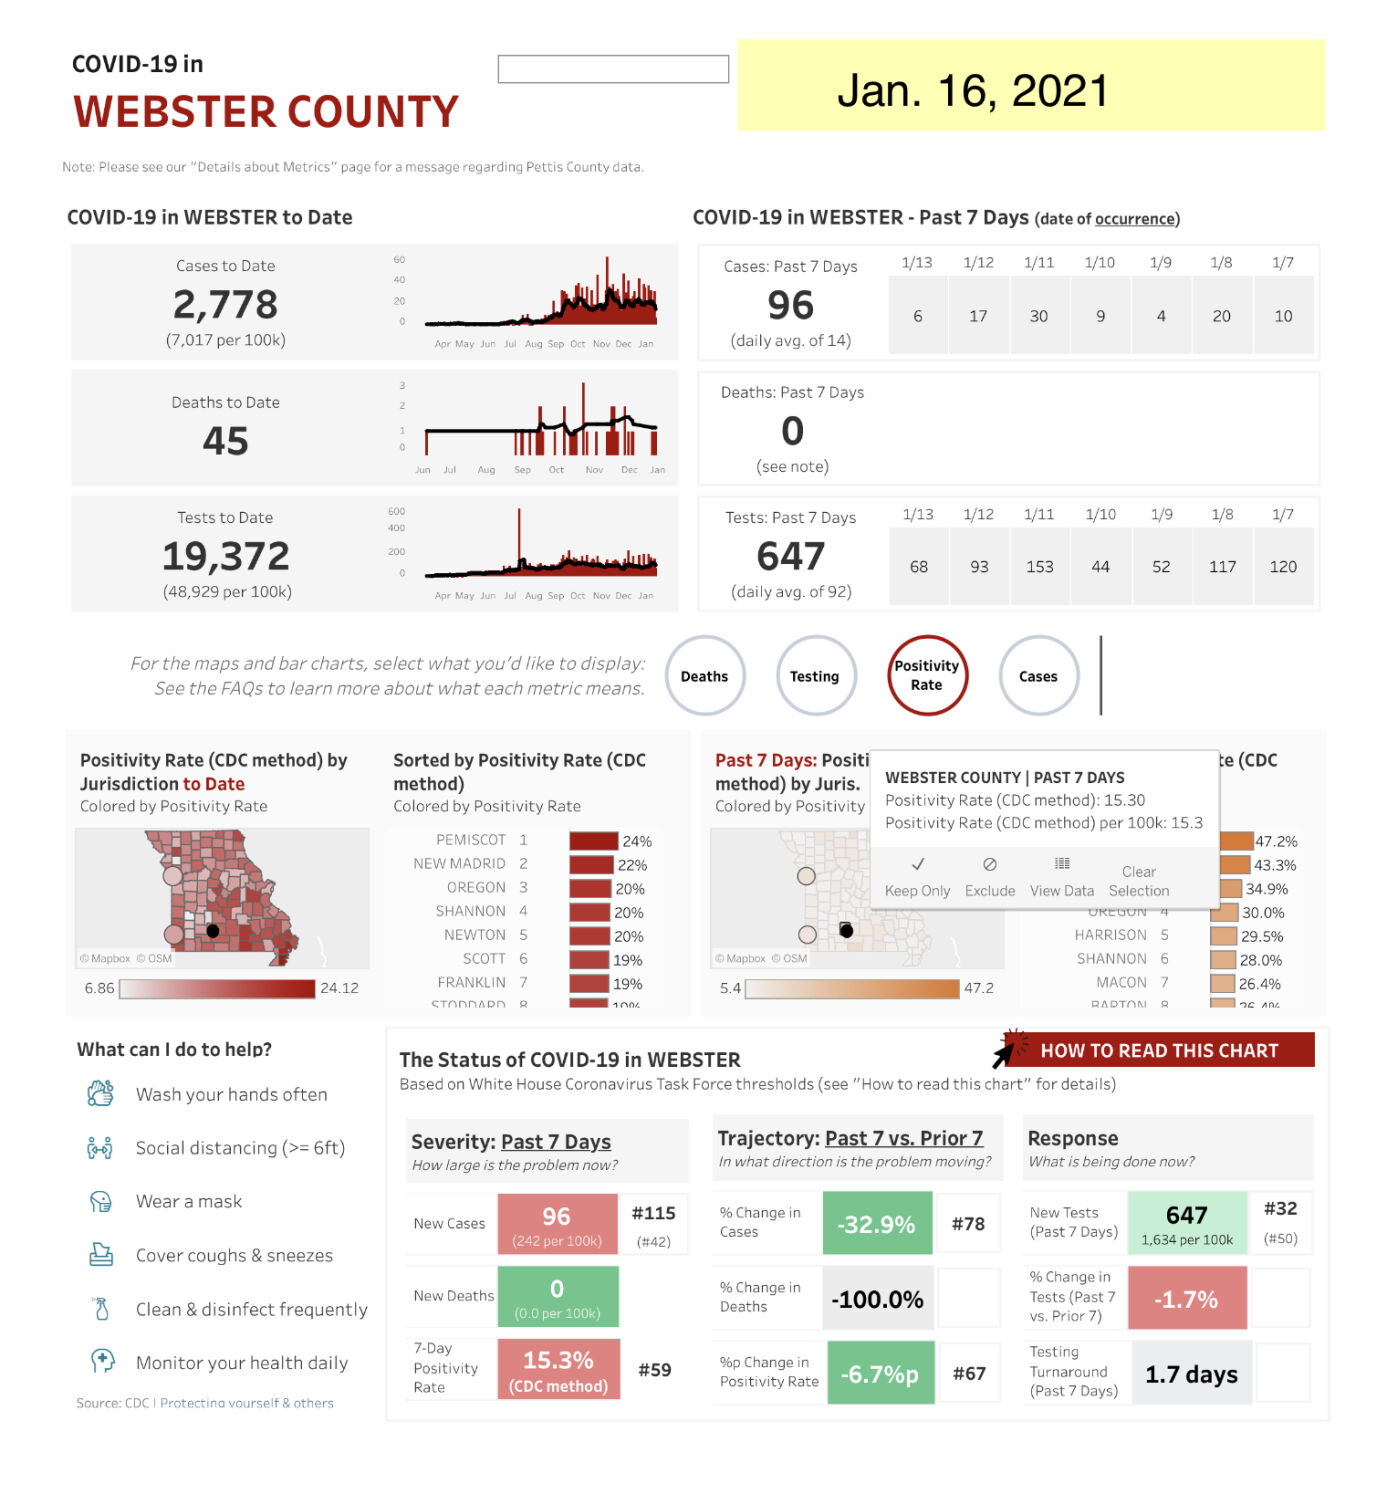 - COVID-19 cases Jan. 16 Web. Co. Mo. State